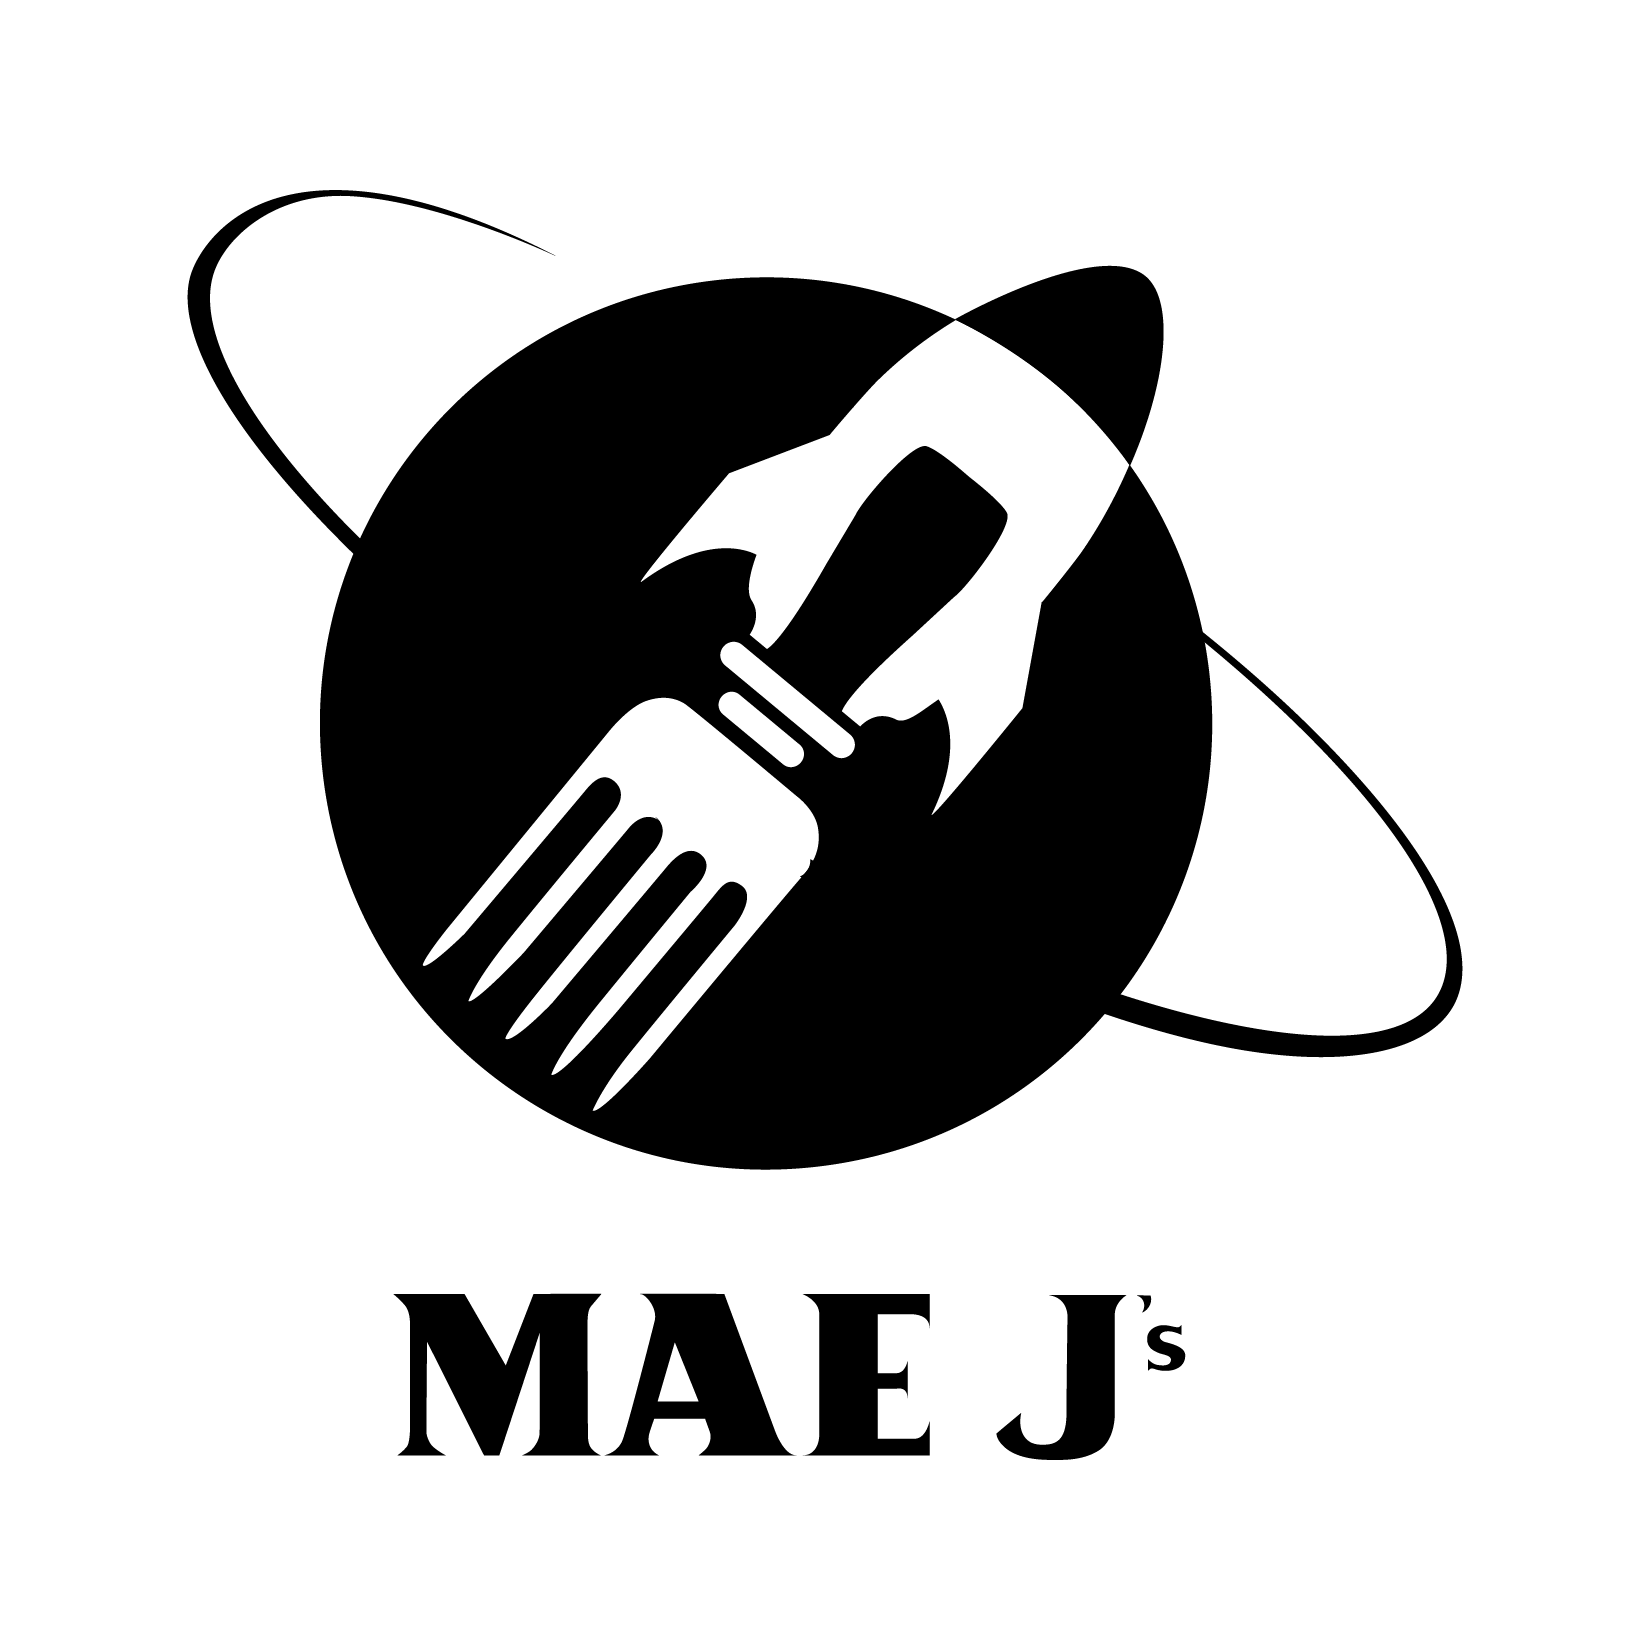 MaeJs-text_graphic-small.png